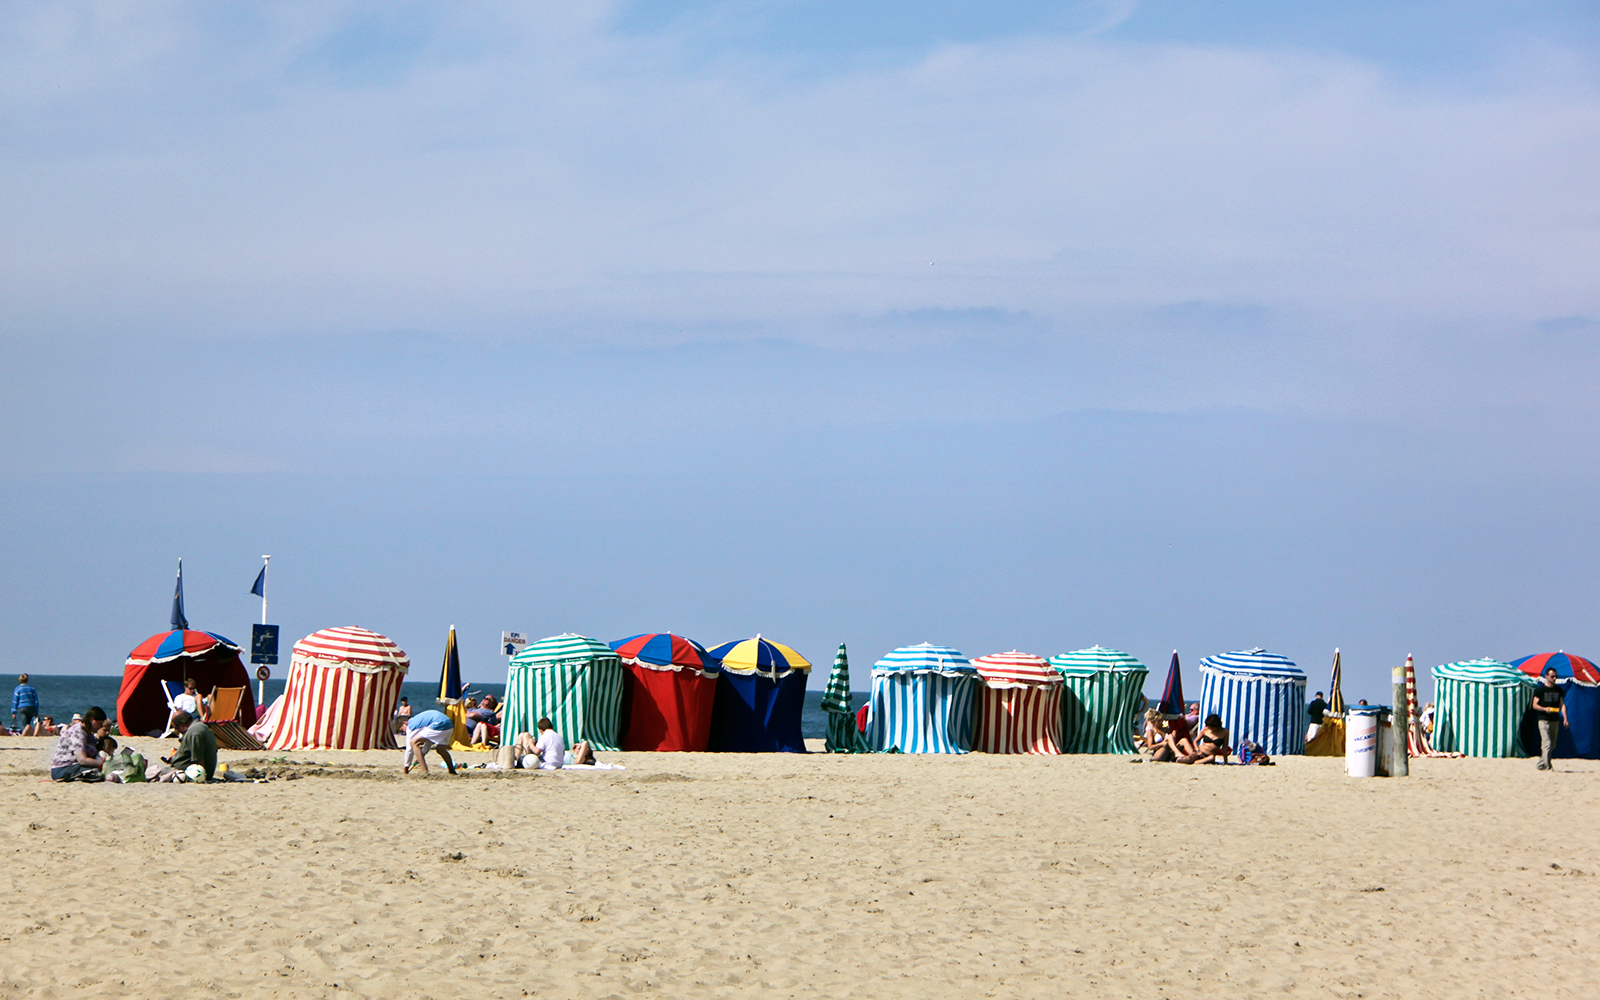 Best Beaches in France: Plage de Trouville, Trouville-sur-Mer